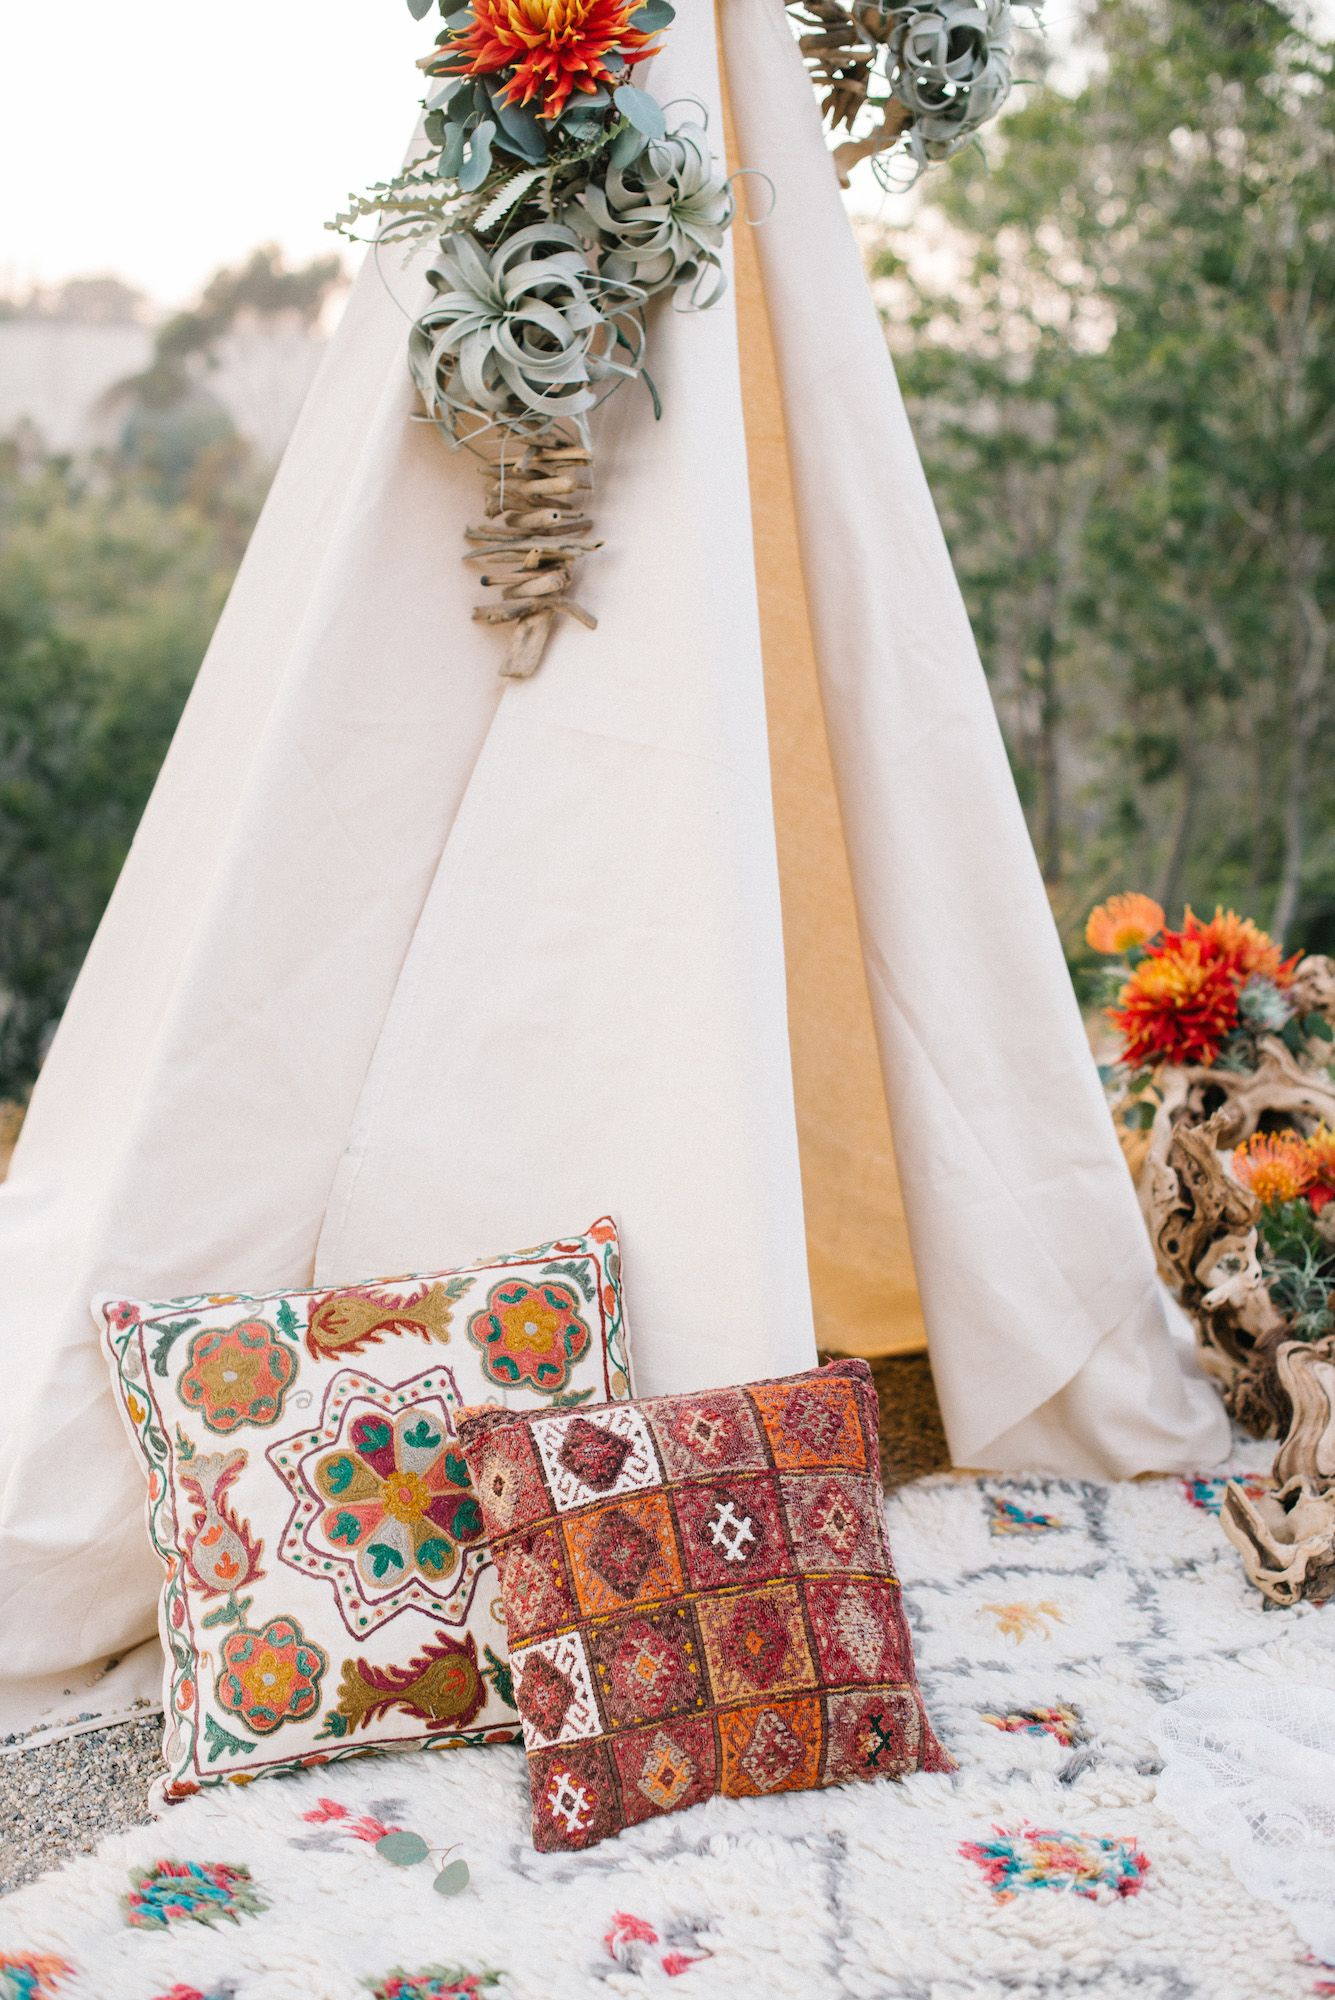 32 Fall Wedding Ideas - Best Autumn Wedding Themes